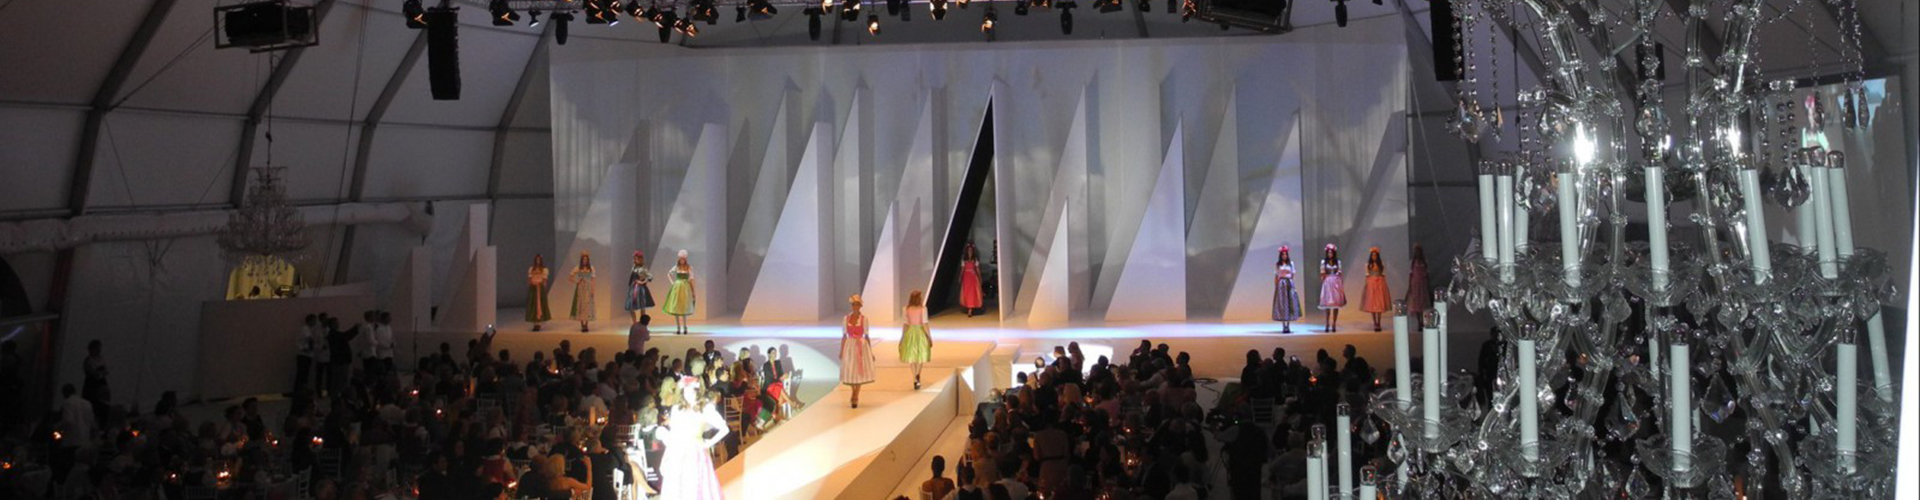 Fashion Industry Structure Rentals